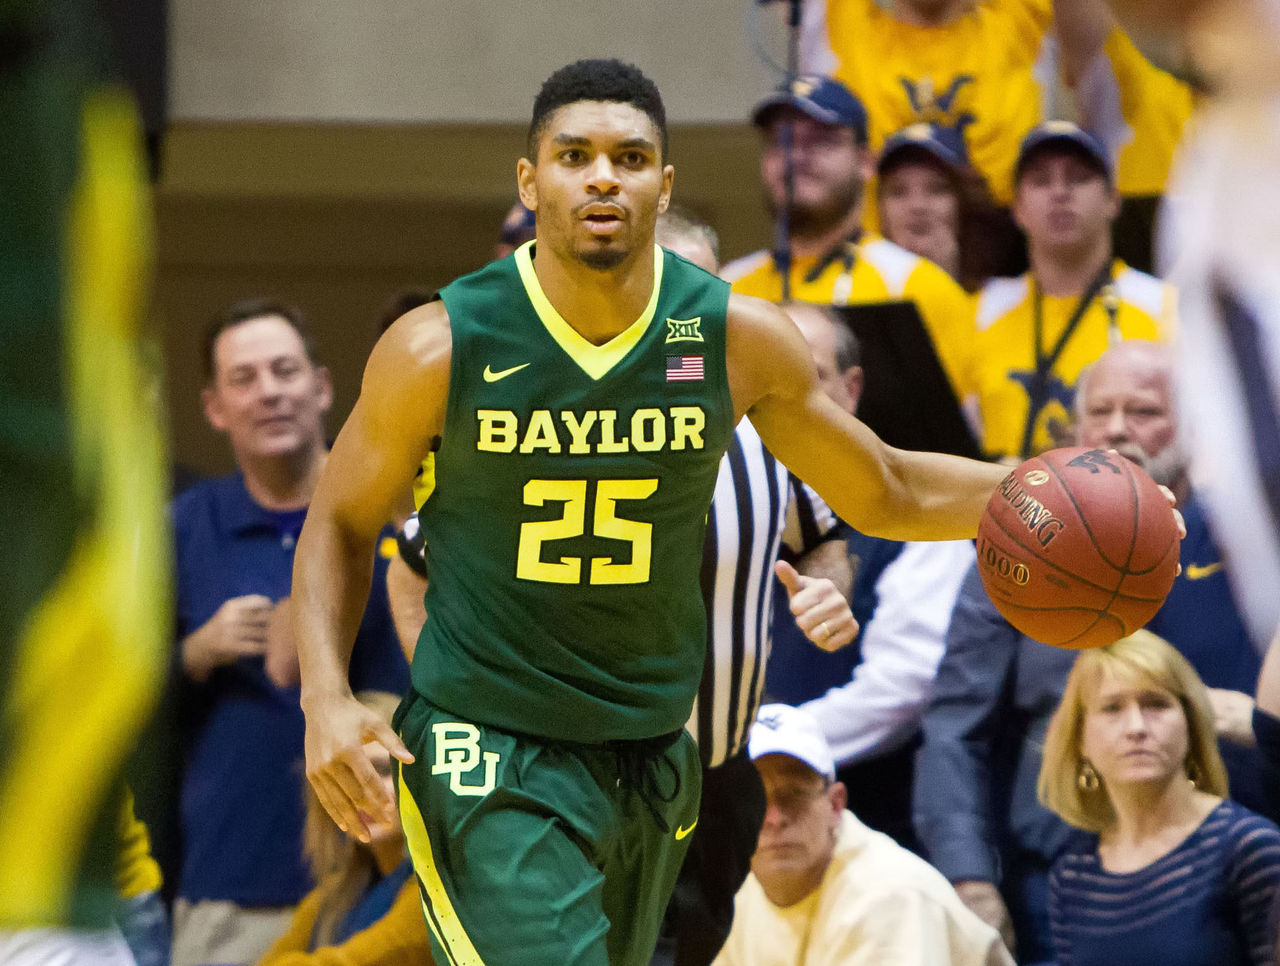 Cropped 2017 01 11t010739z 1206455105 nocid rtrmadp 3 ncaa basketball baylor at west virginia